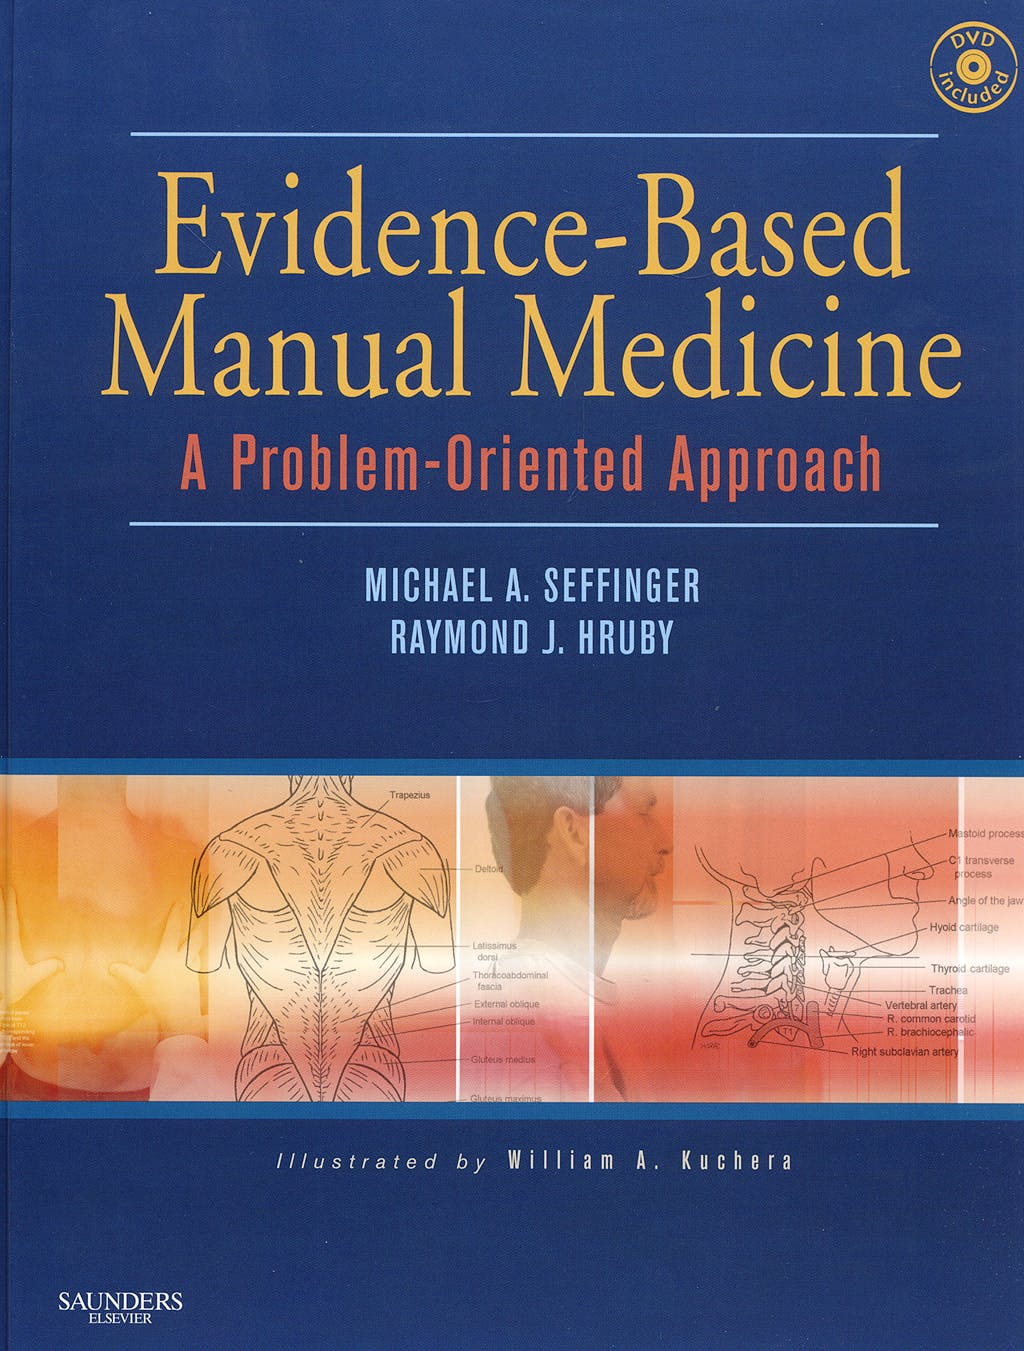 Producto: Evidence-Based Manual Medicine. a Problem-Oriented Approach + Dvd